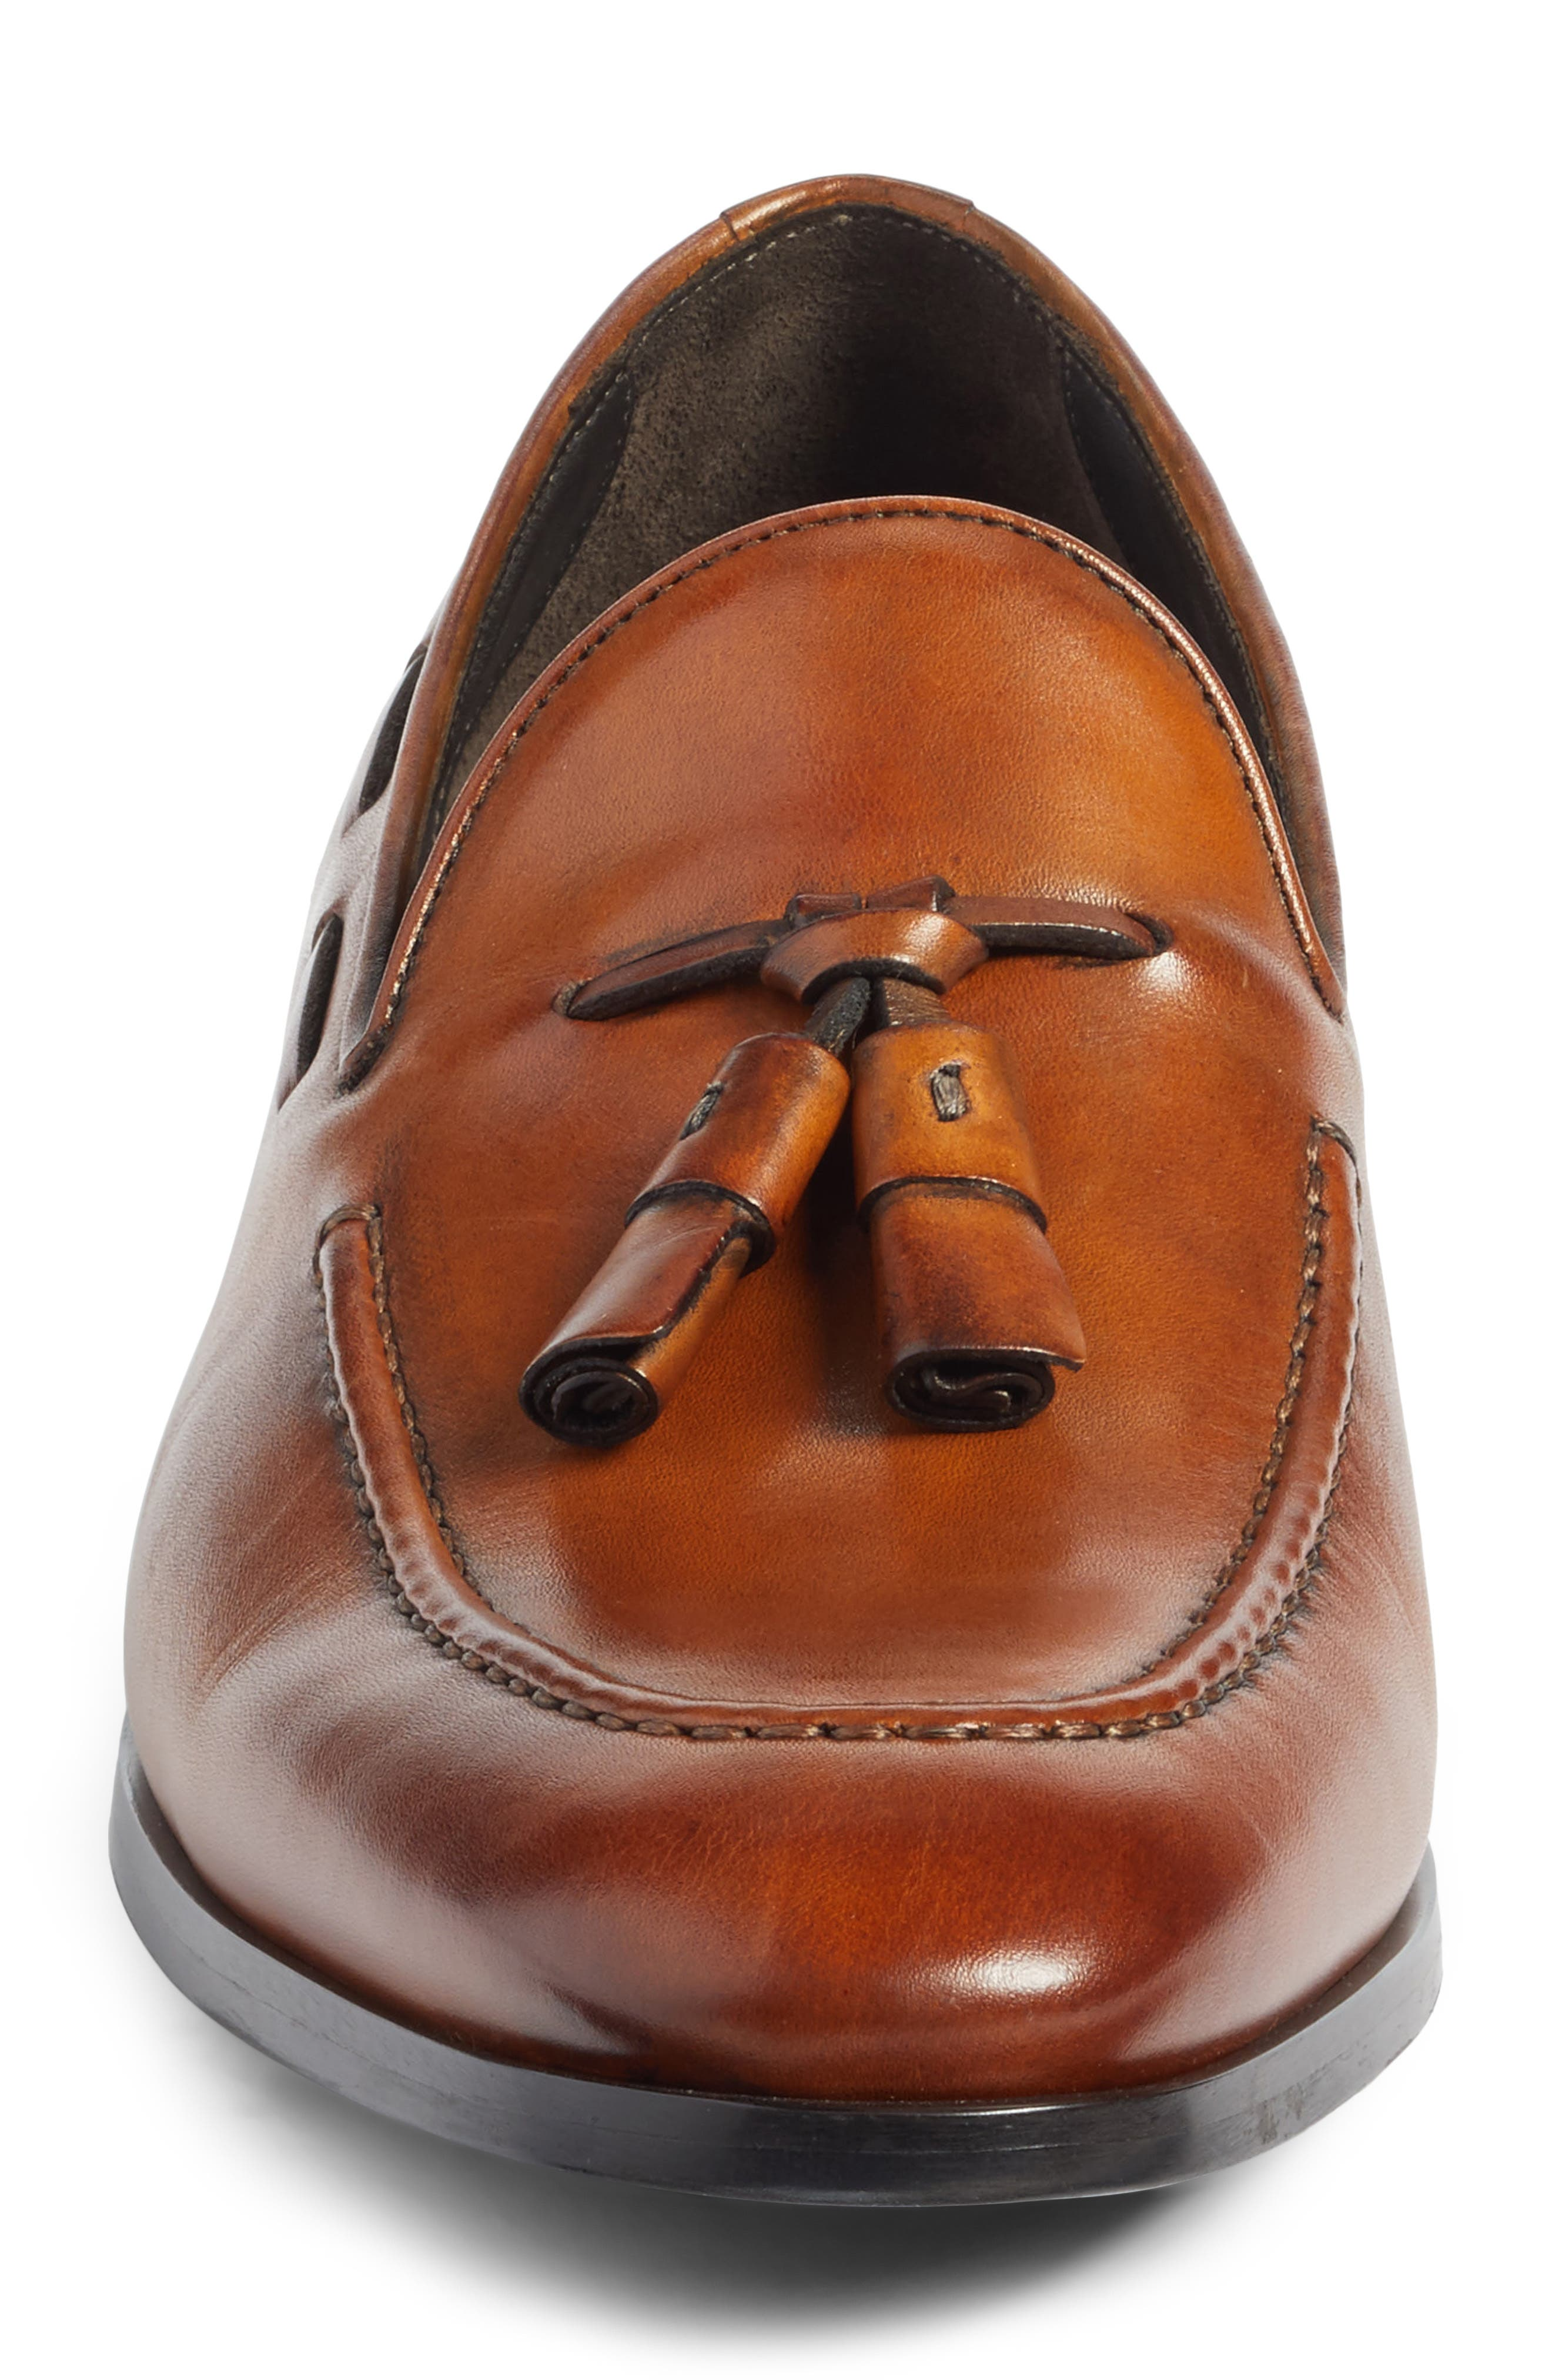 Barclay Tassel Loafer,                             Alternate thumbnail 4, color,                             Cognac Leather